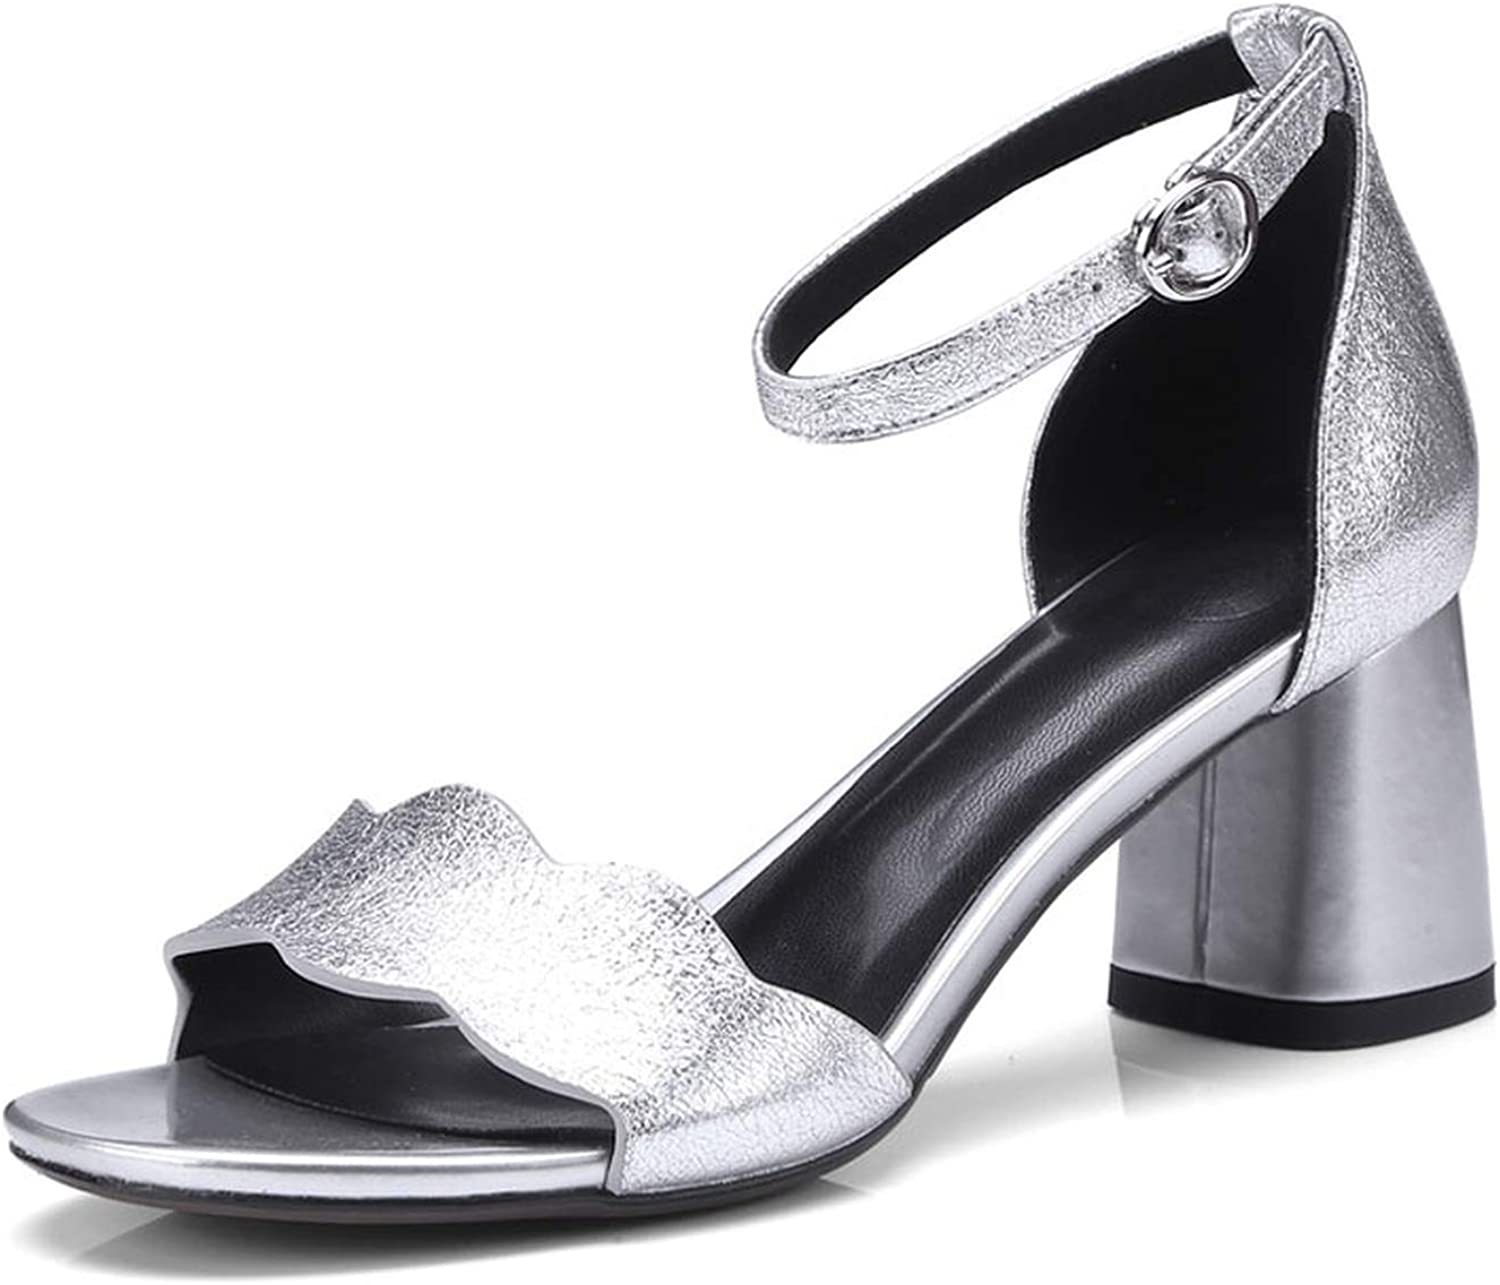 Summer Genuine Leather High Heel Sandals shoes Women Ankle Strap High Heels Party shoes Thick Pumps Silve